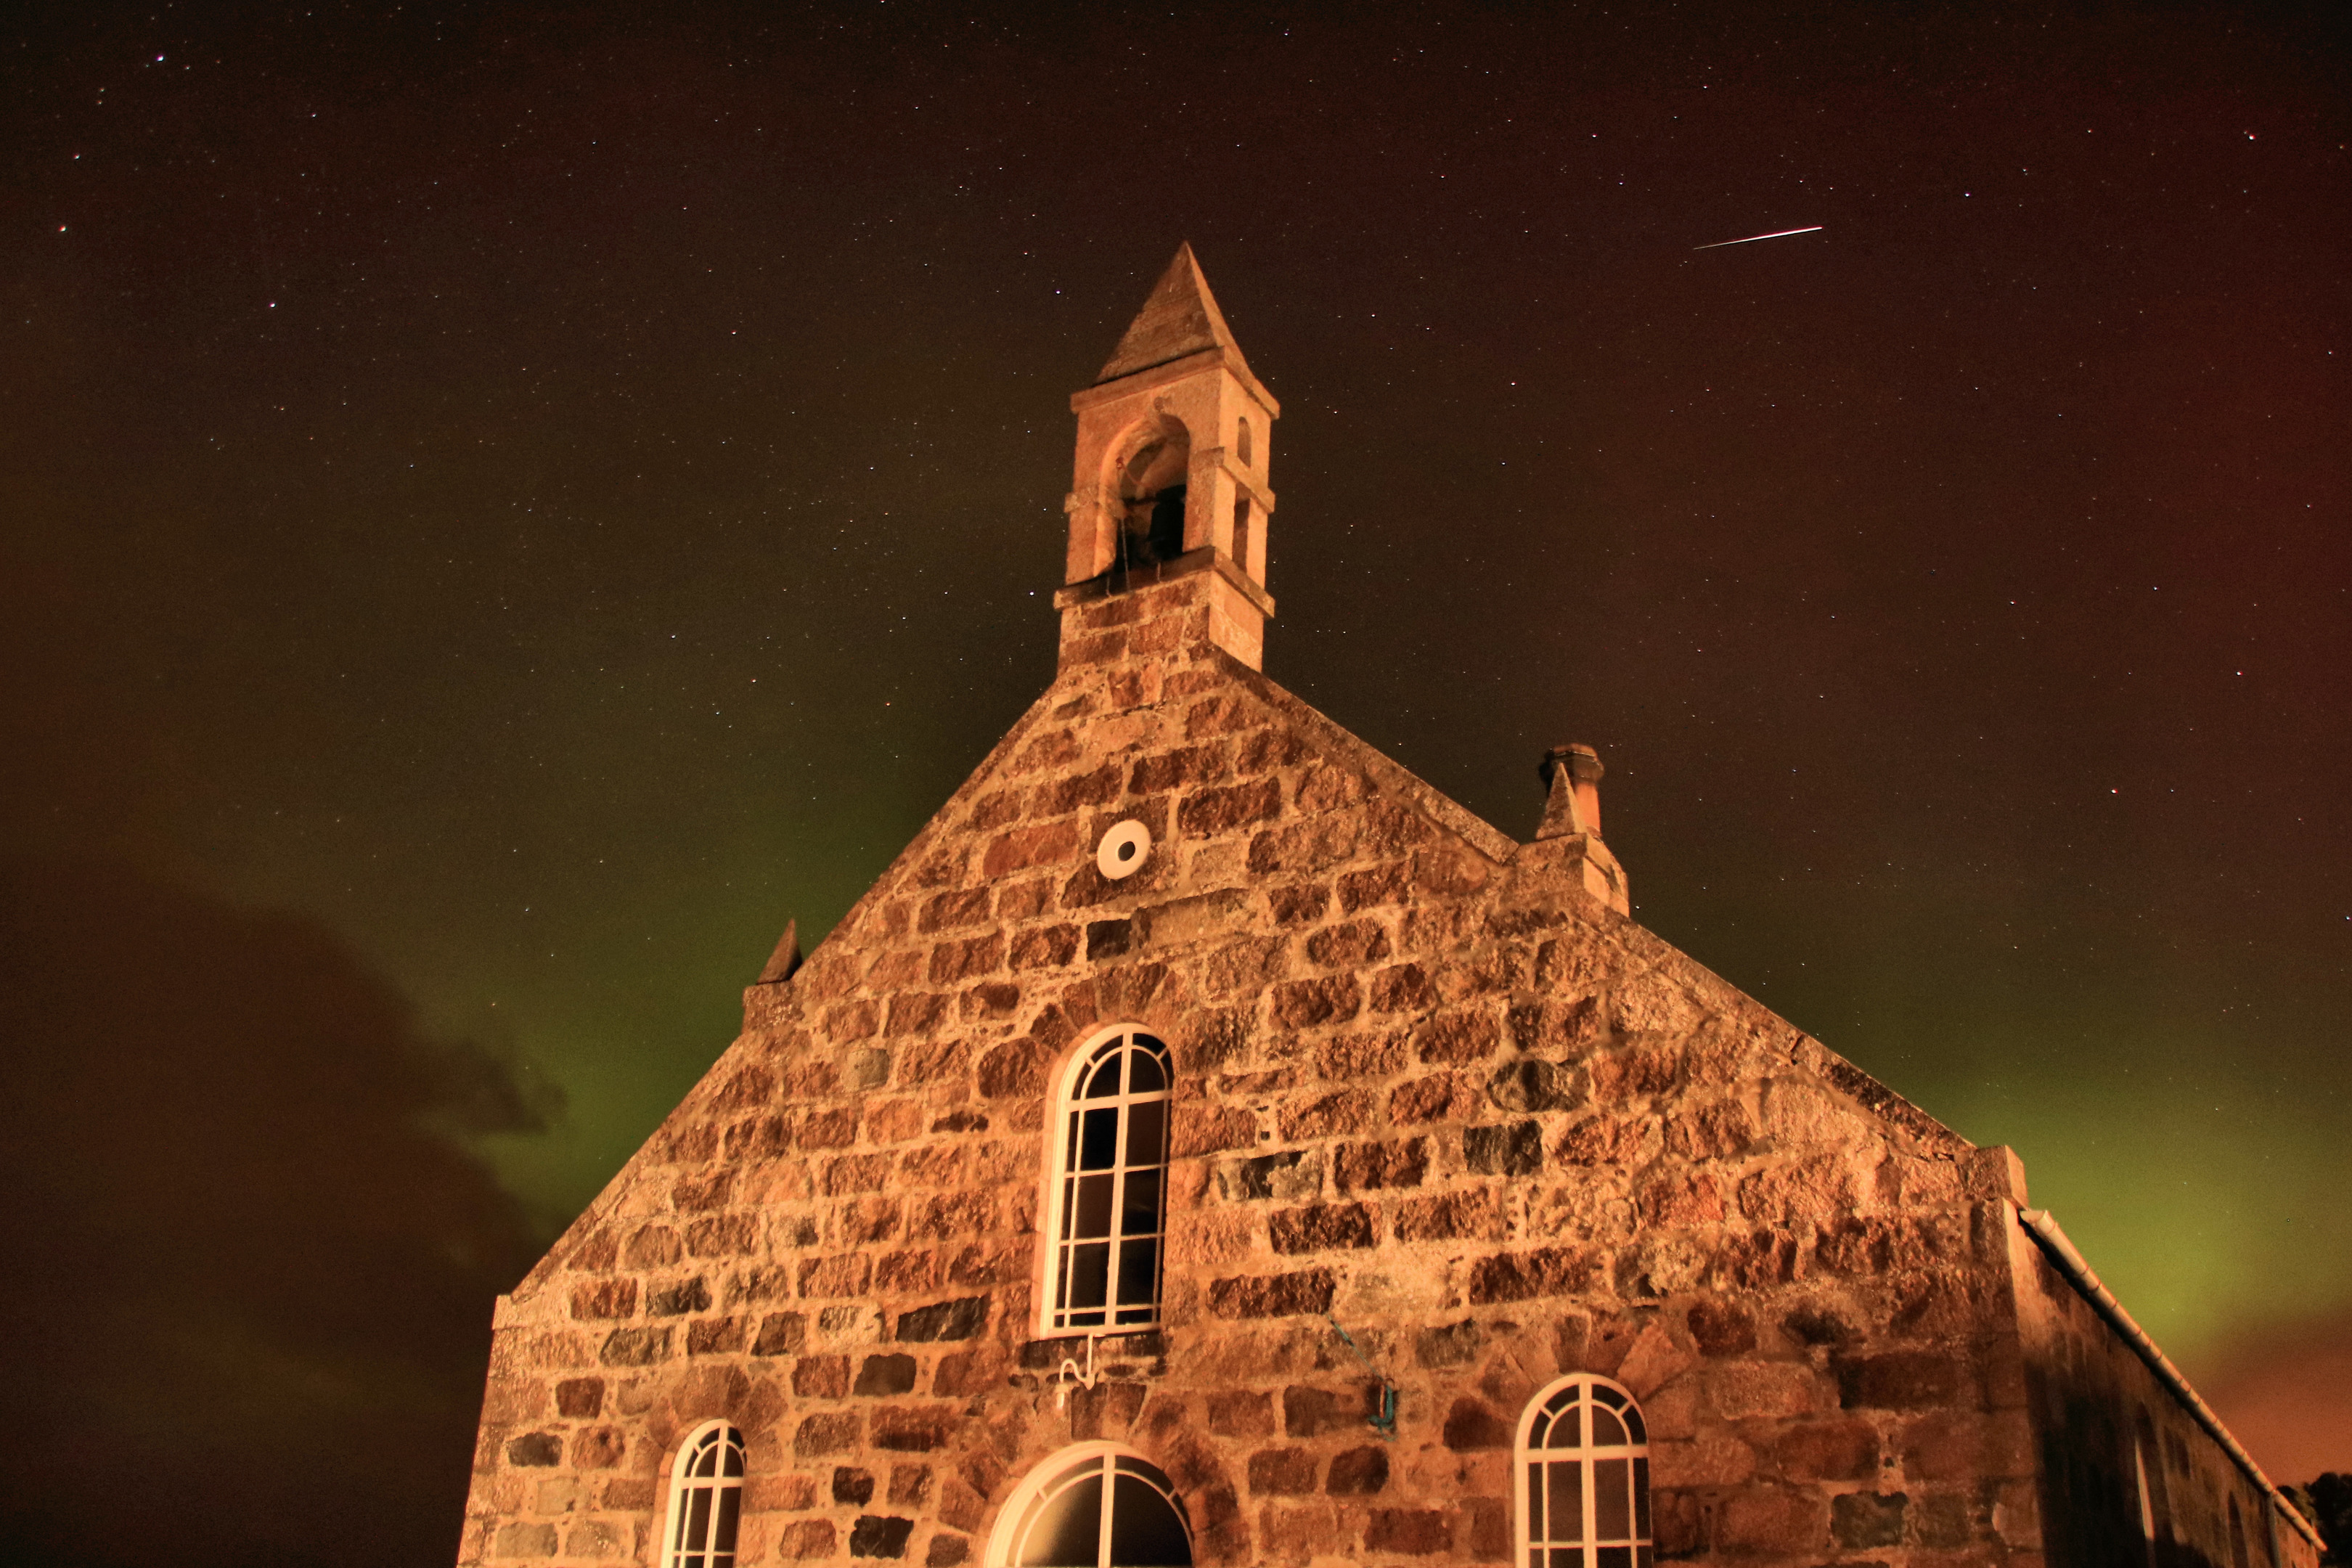 Northern Lights and Meteor over Blairdaff, near Kemnay. Picture by Rick Ellerman